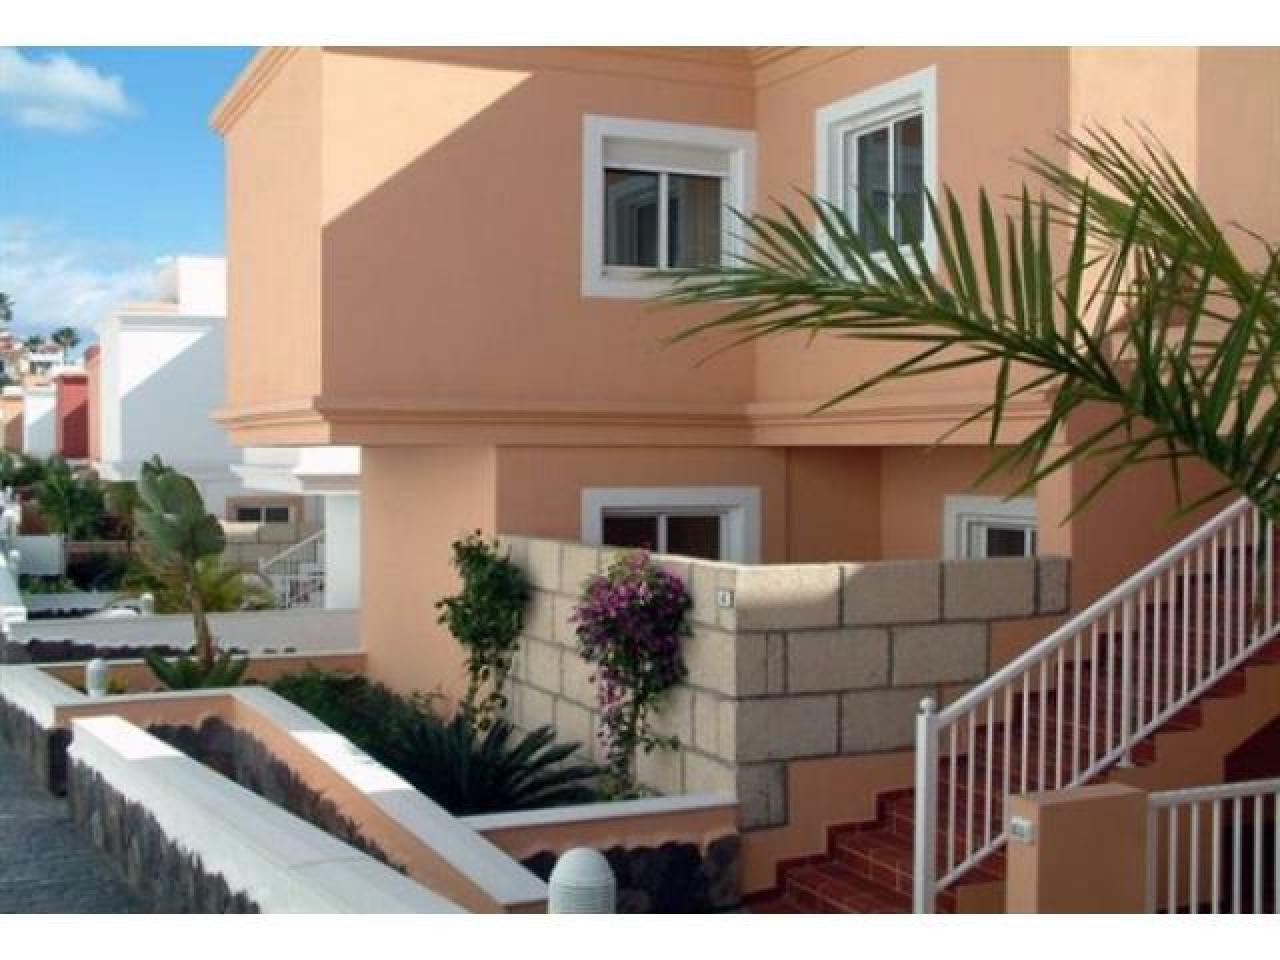 Real estate in Tenerife for sale » #43 - 3